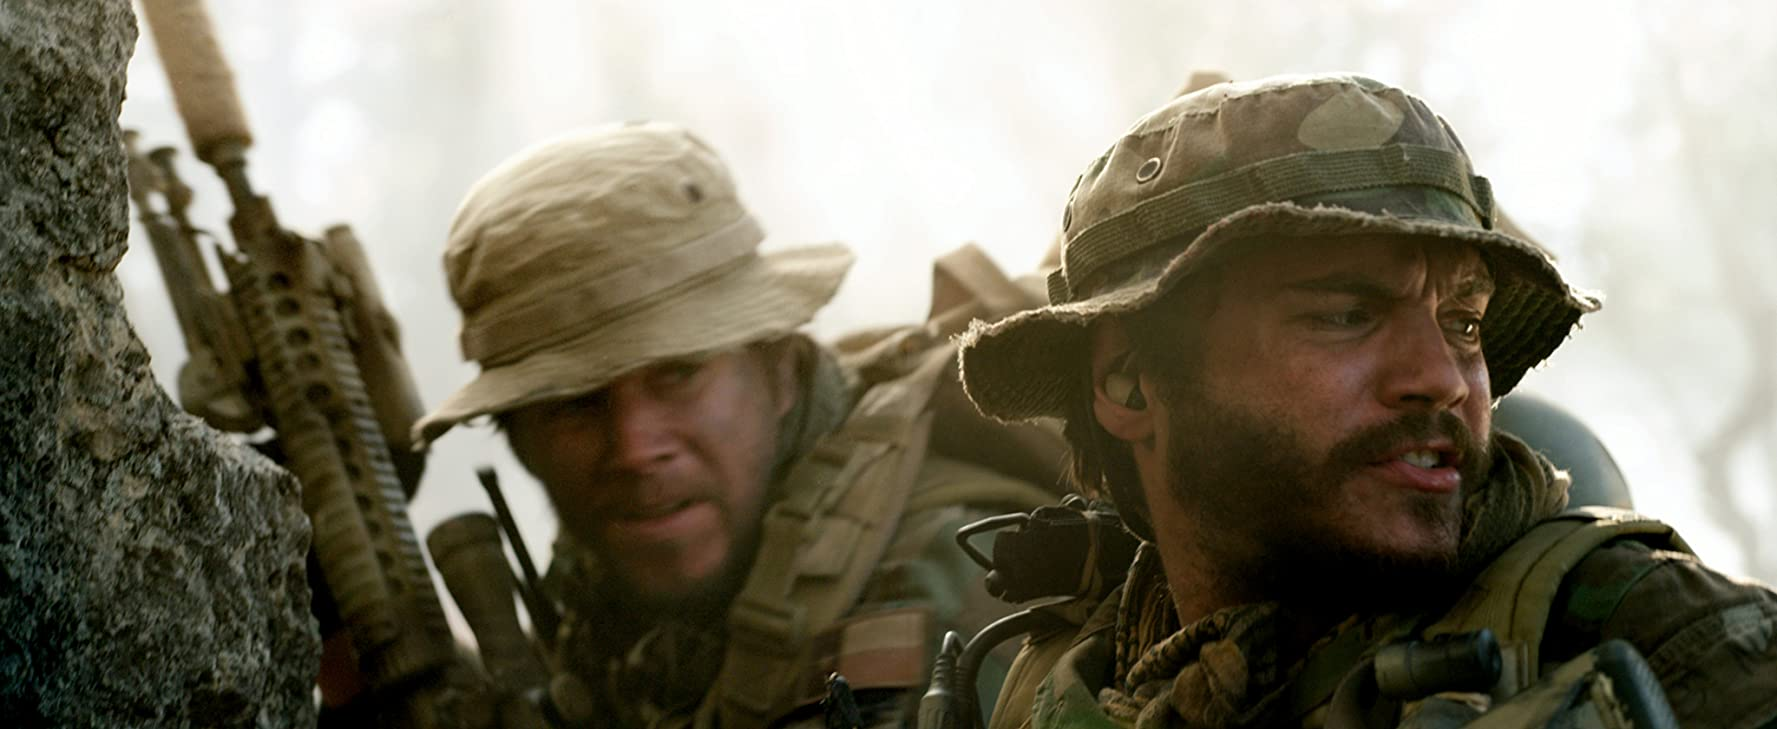 Mark Wahlberg and Emile Hirsch in Lone Survivor (2013)